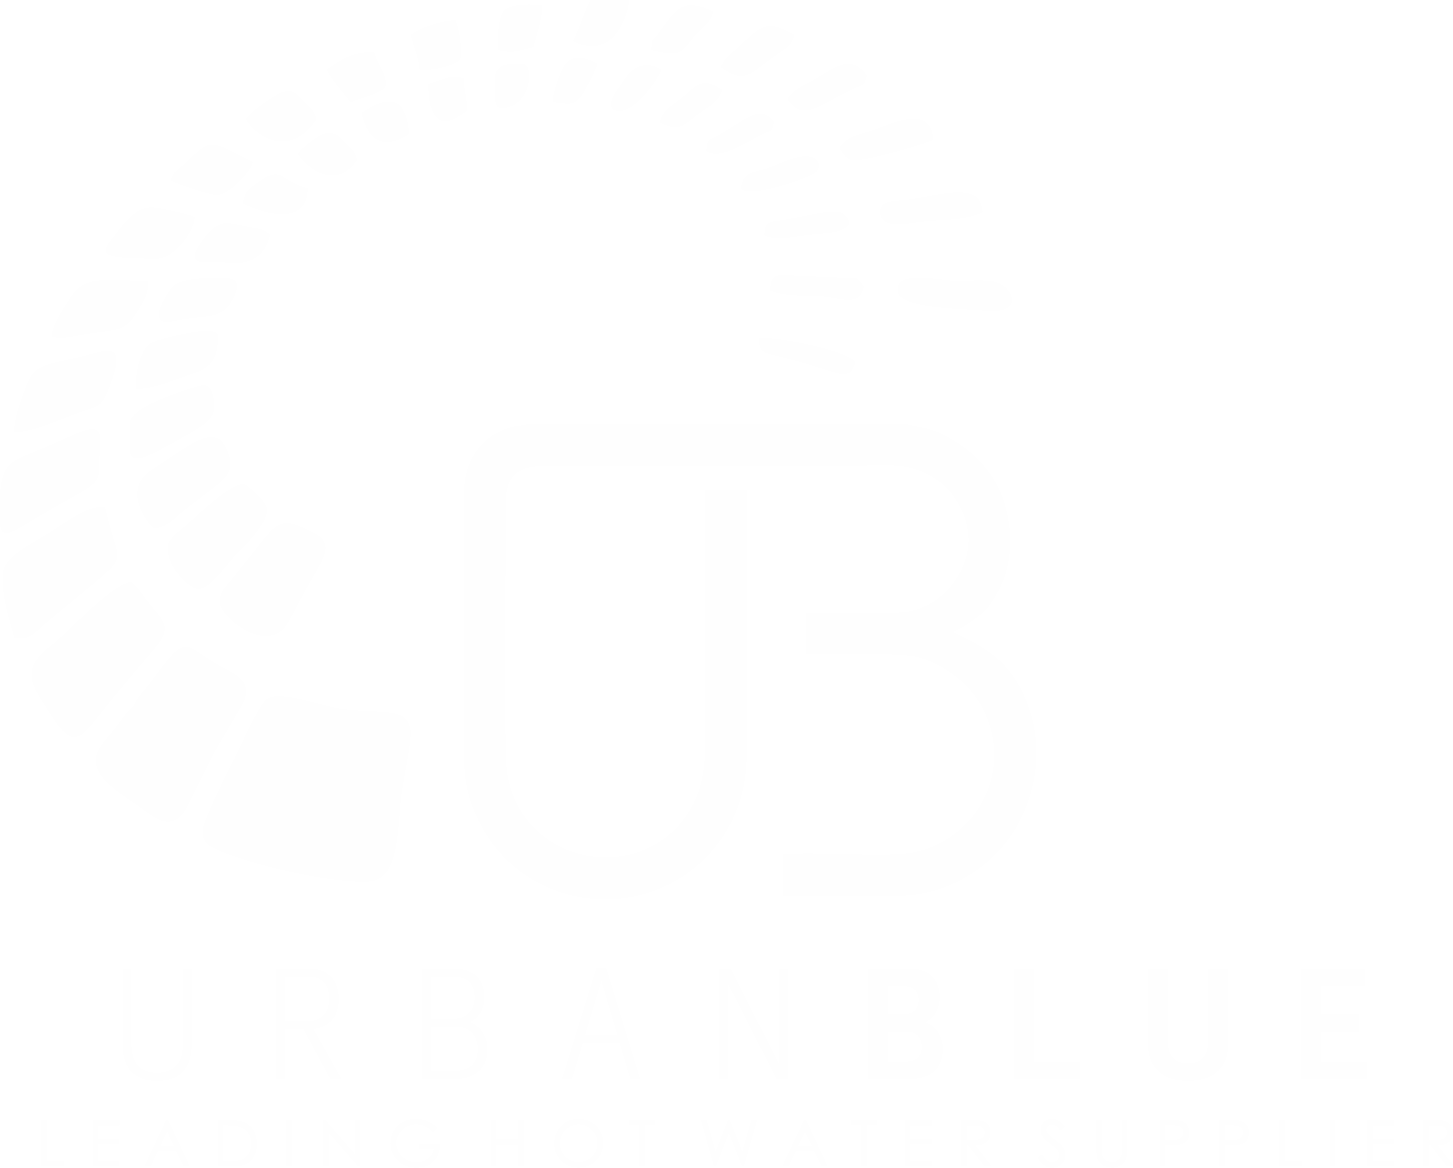 Urban Blue aims to become the leading supplier of energy efficient hot water products and designs in South Africa. We aim to achieve this through our strategic partnerships with leading suppliers in the fields of Solar and Heat pump technologies as well as the expertise and experience of leading Engineers in the field of Thermo Dynamics. We only make use of the highest quality components available and believe in a buy once philosophy, we look forward to partnering with you.